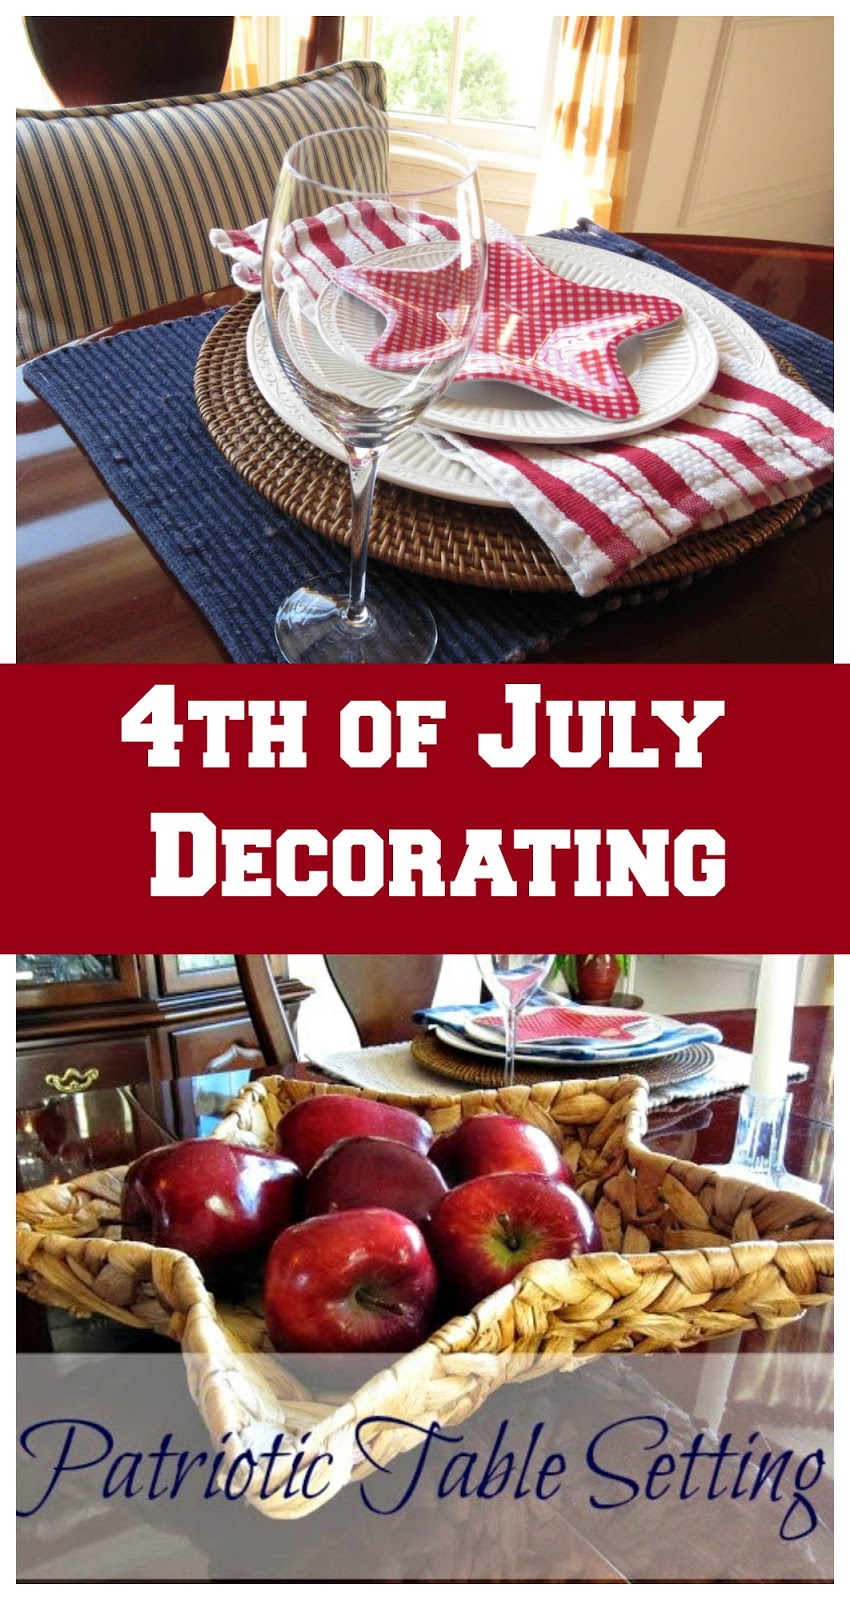 Simple and Casual Patriotic Table Decorating - A Patriotic Table Setting using a few simple red, white and blue pieces